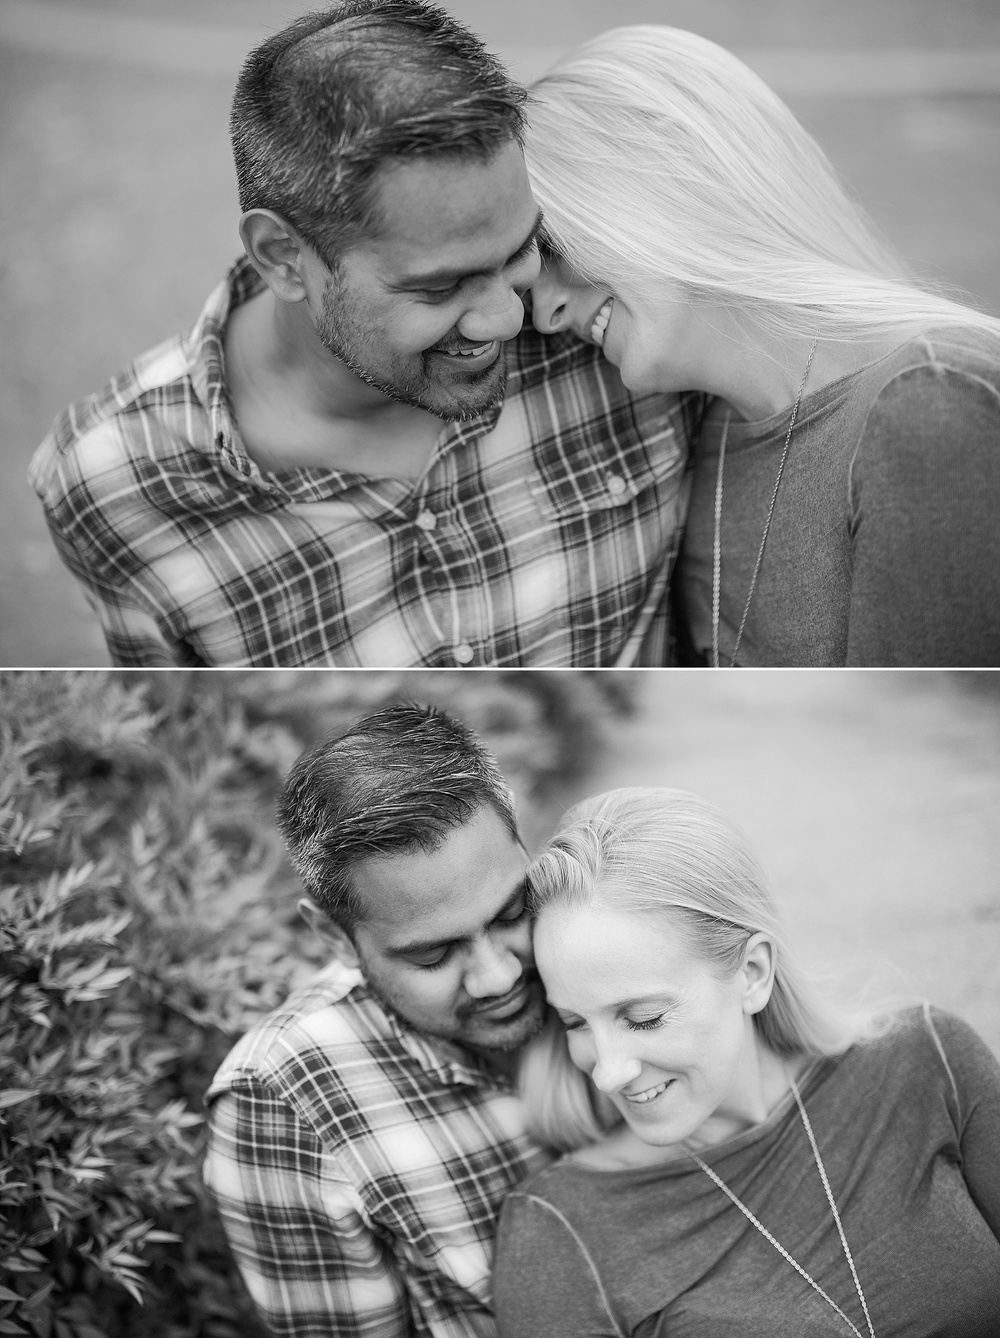 engagement-session-browns-island-tredegar-richmond-va-rva_0020.jpg